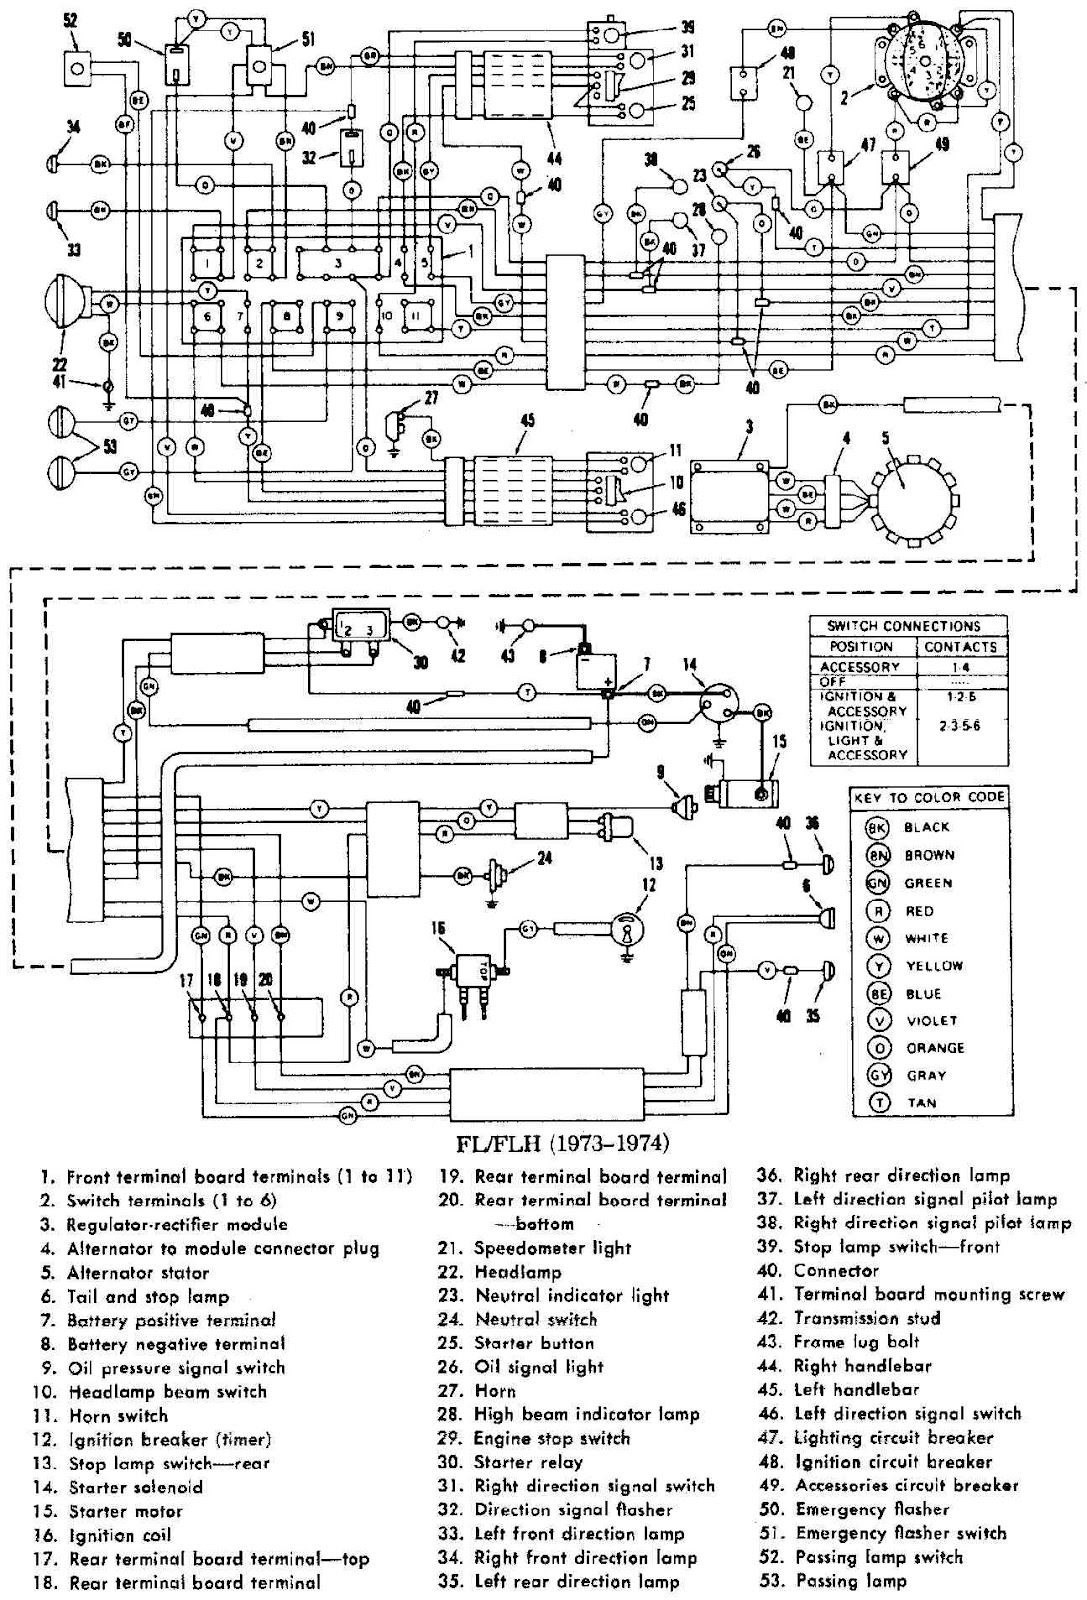 75 Flh Wiring Diagram Example Electrical Ironhead Shovelhead V Twin Forum Harley Davidson Forums Gangster